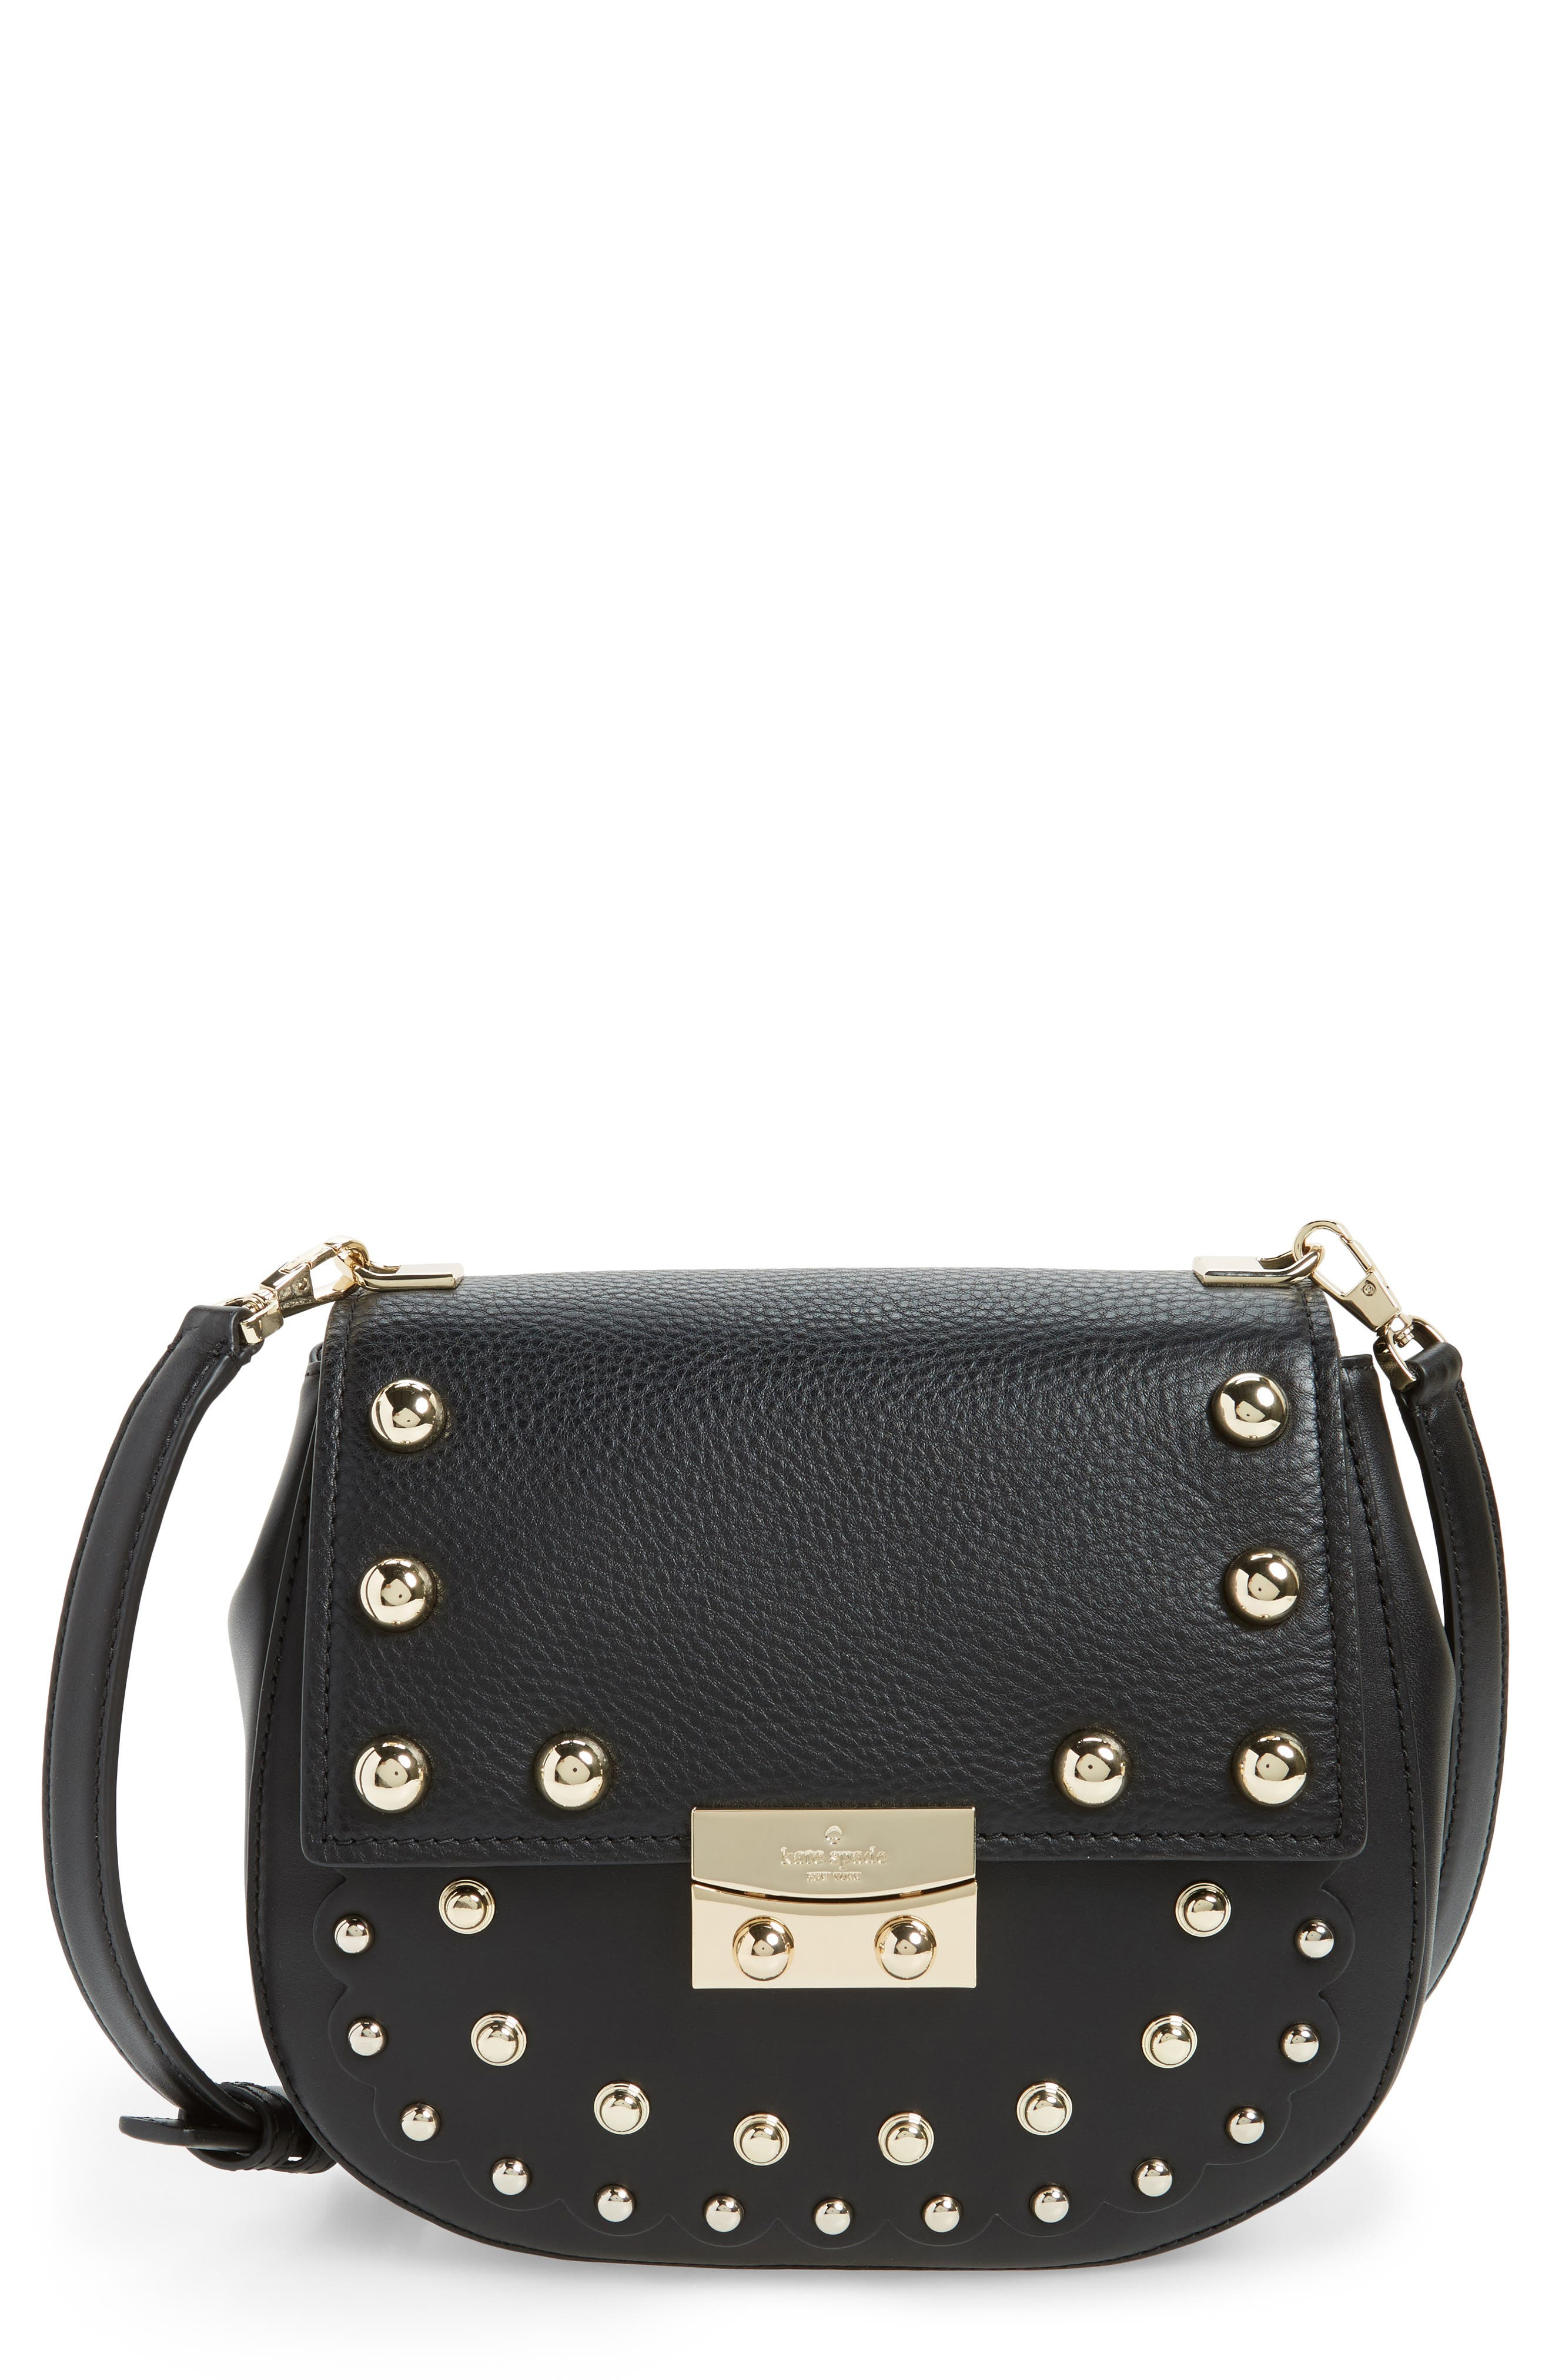 Alternate Image 1 Selected - kate spade new york madison stewart street - byrdie studded leather crossbody bag